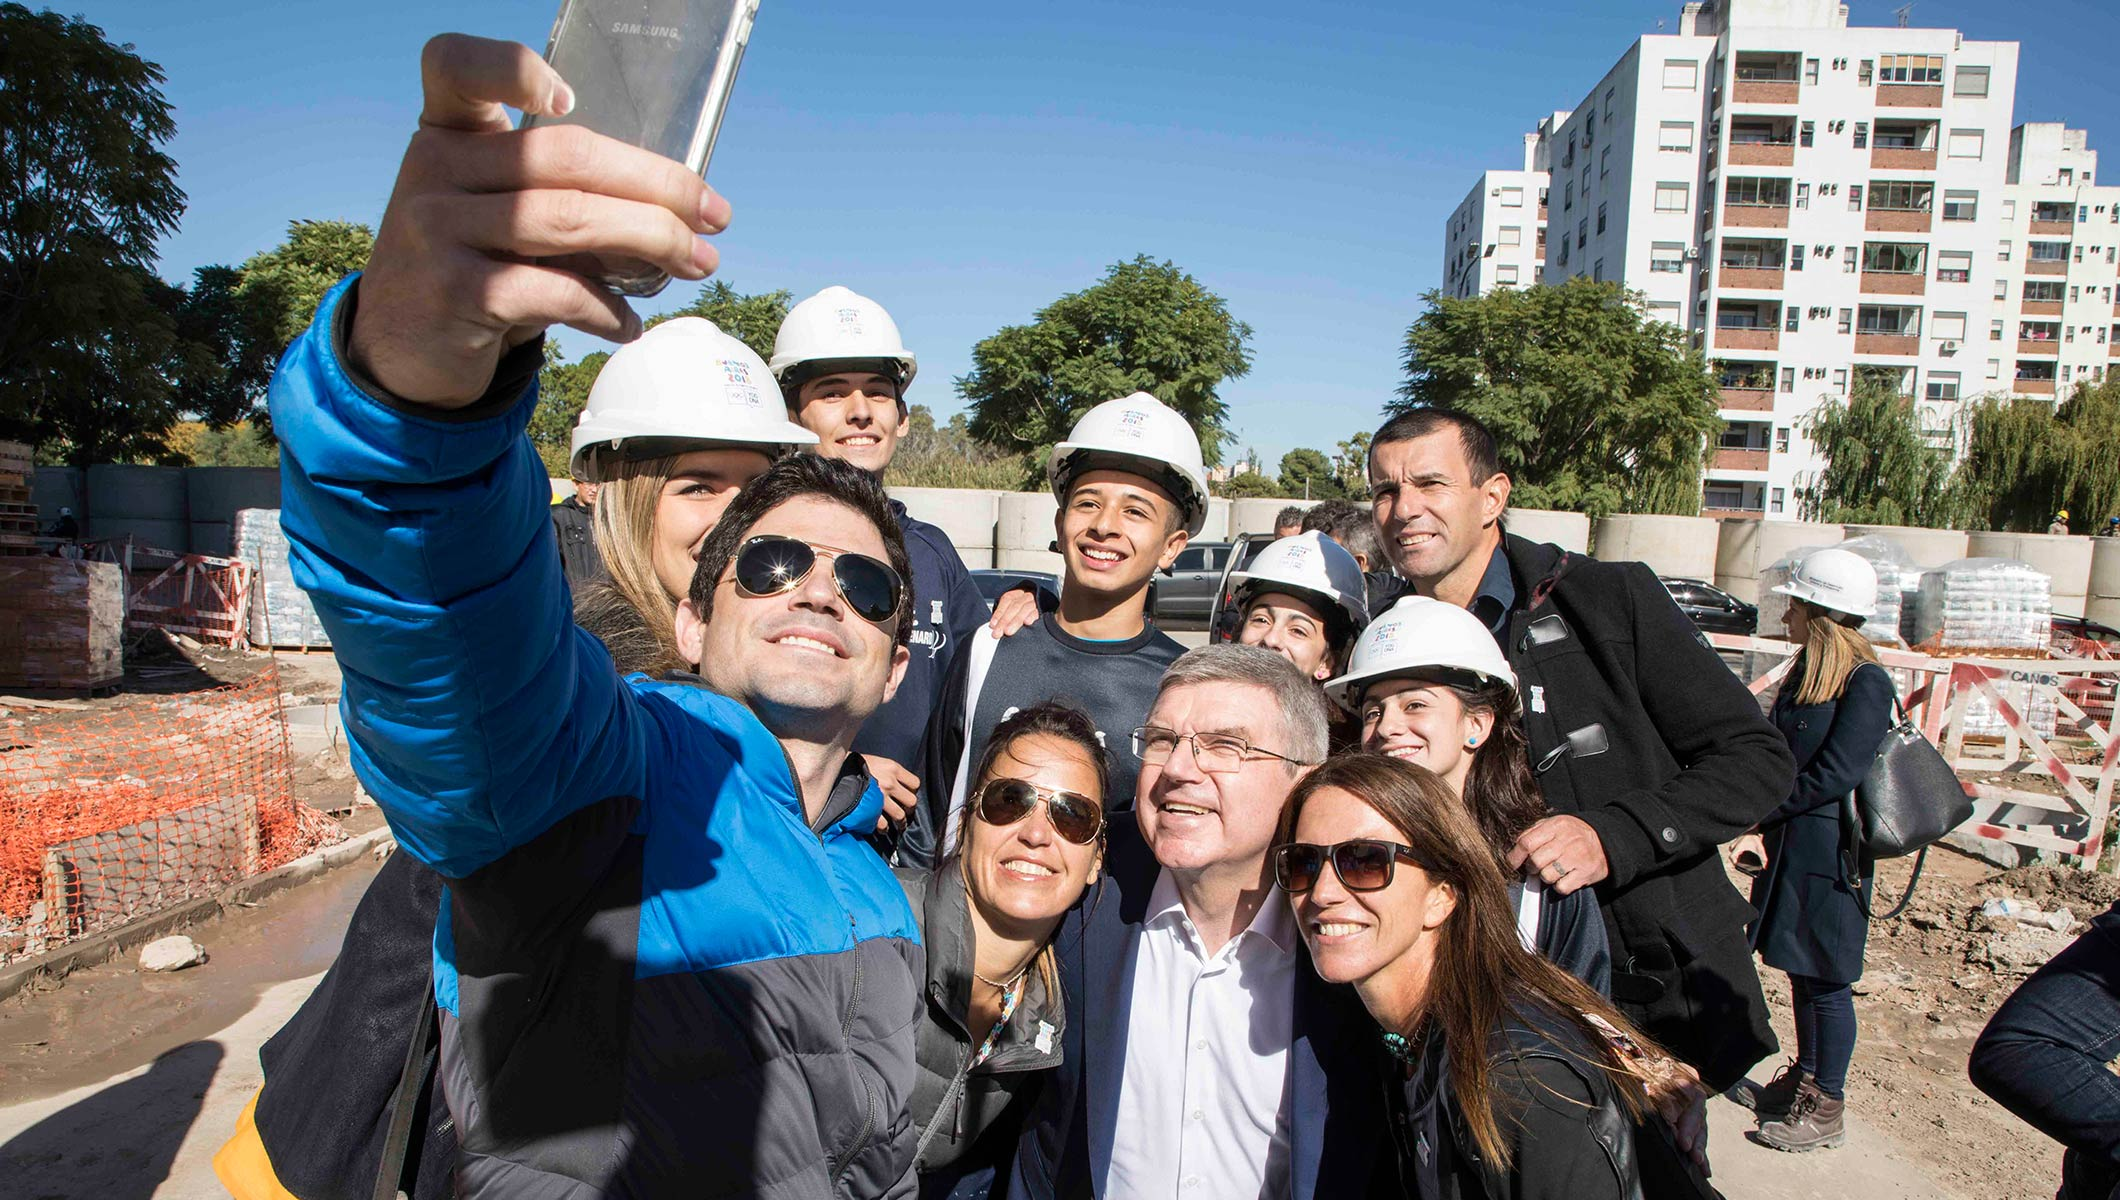 Argentinean athletes share their Youth Olympic hopes with IOC President